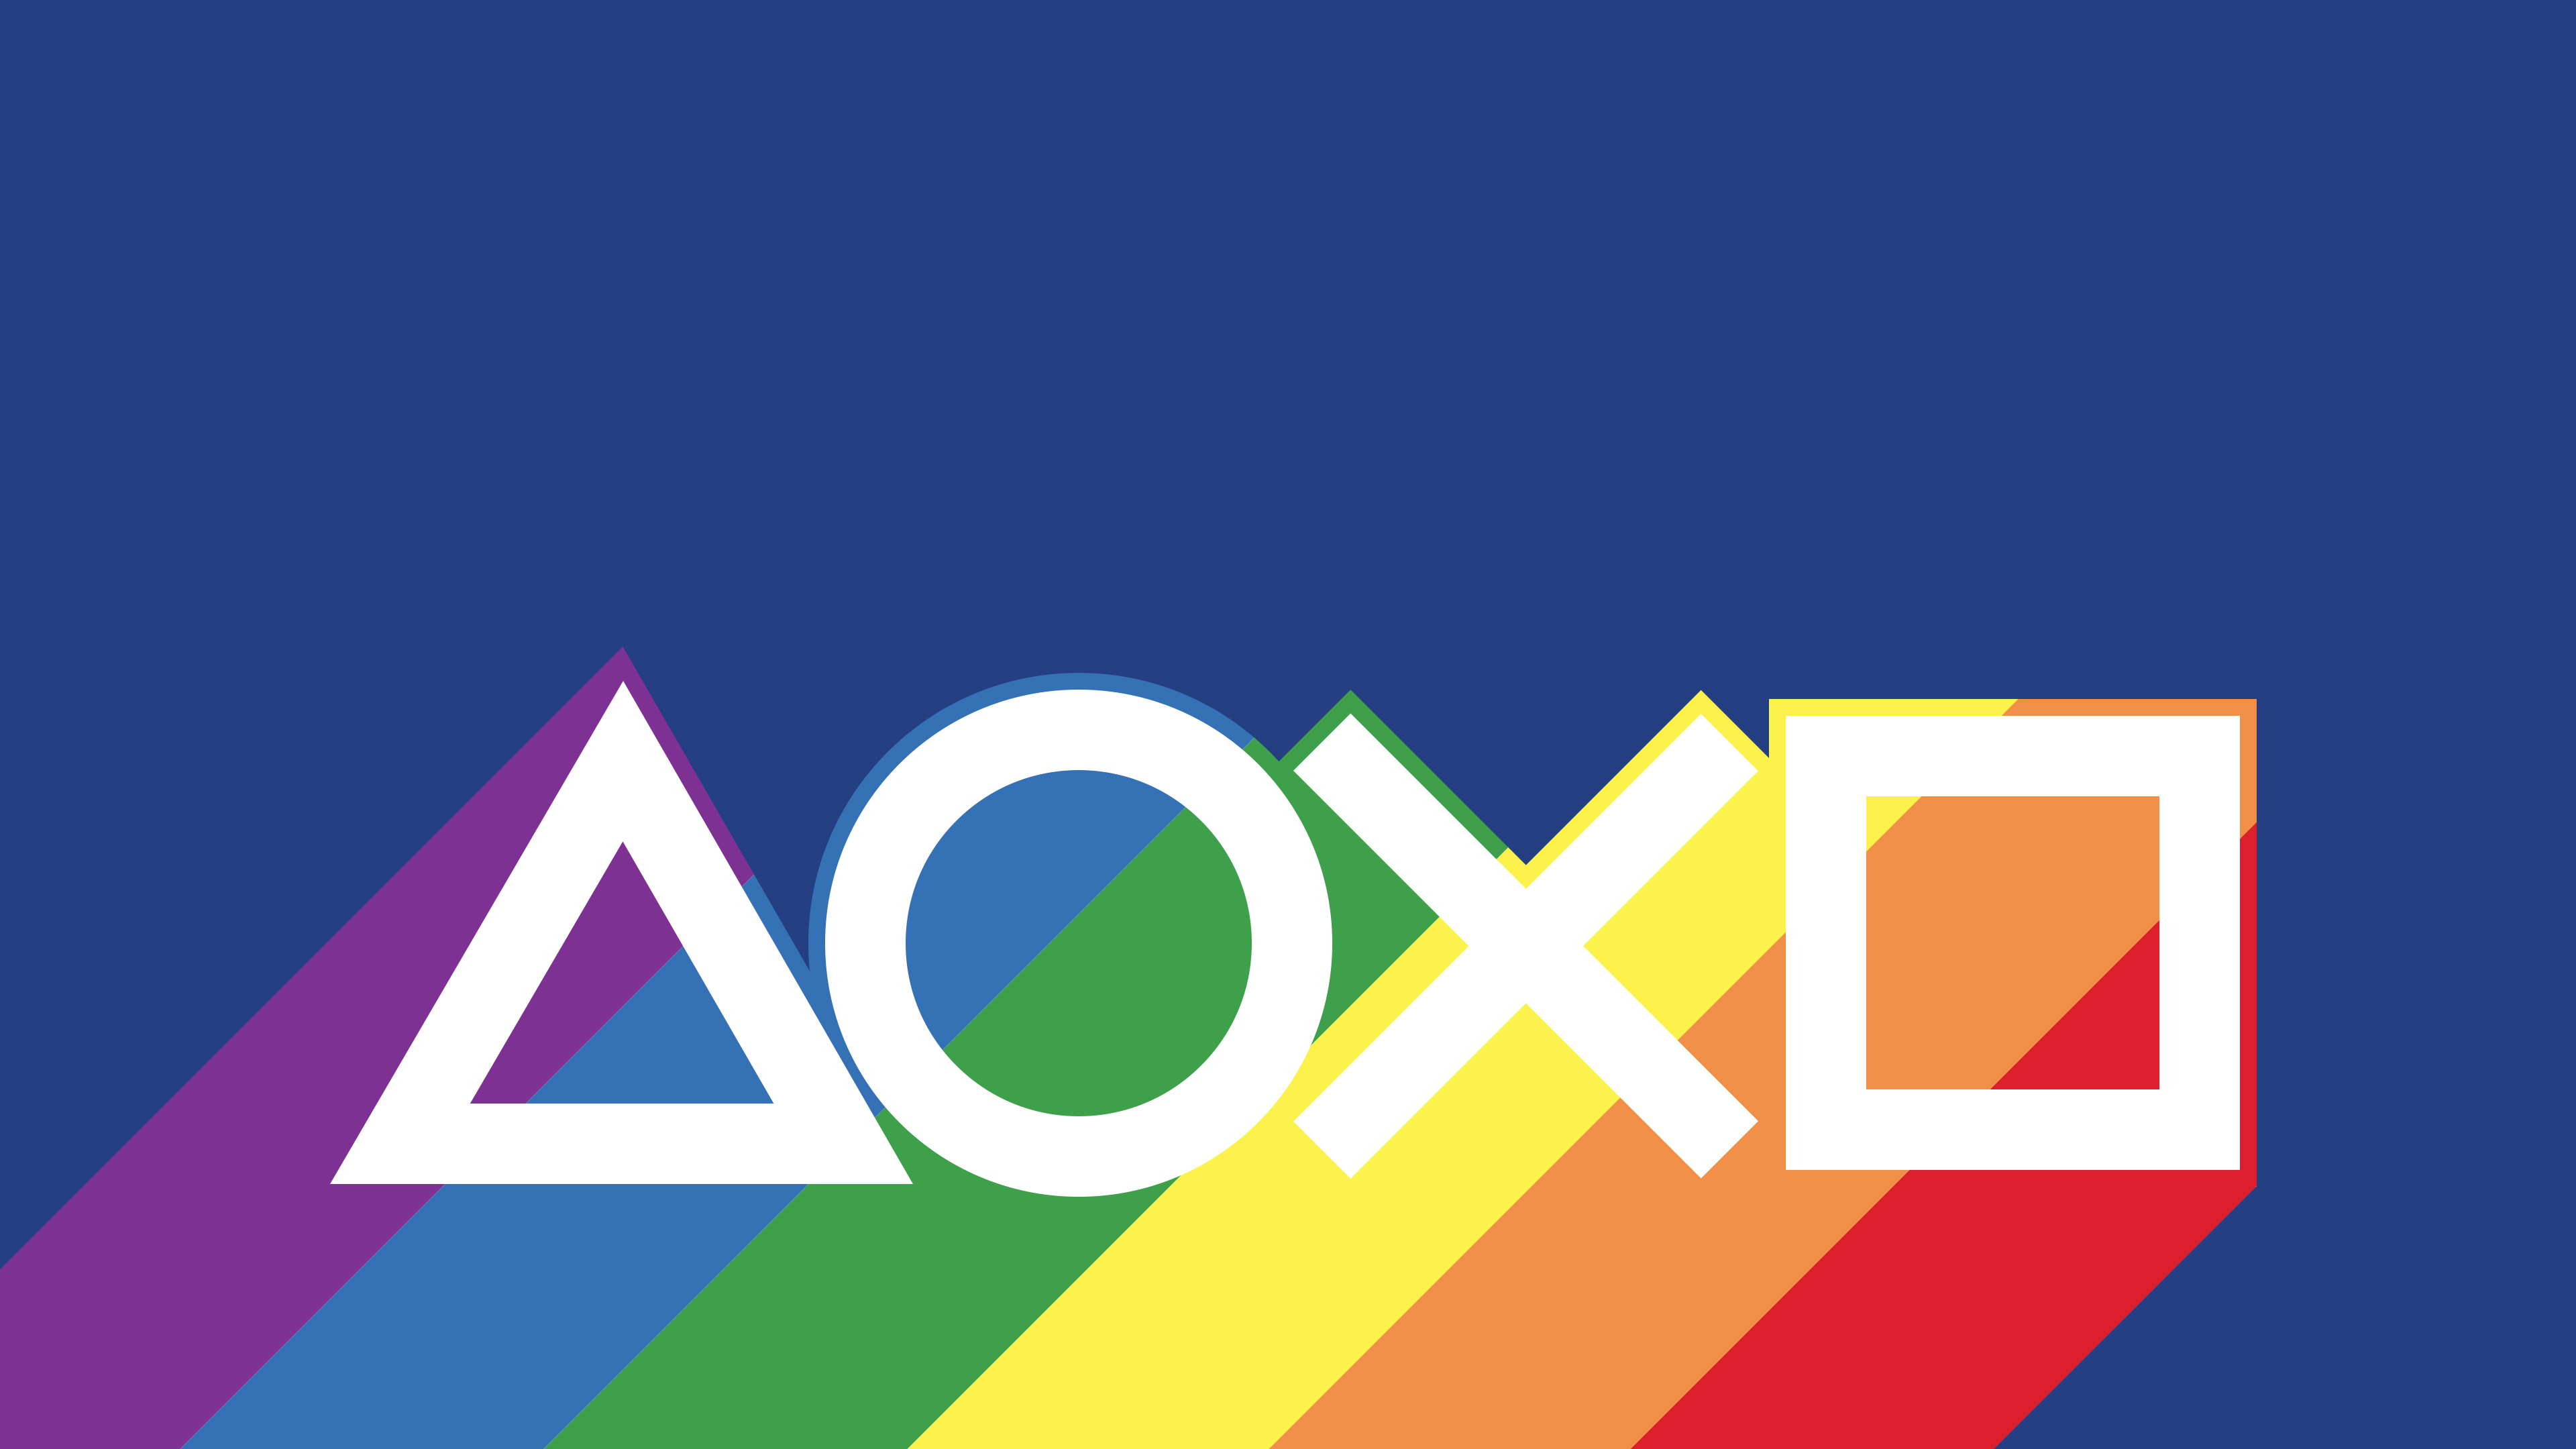 Playstation Pride Playstation Wallpapers